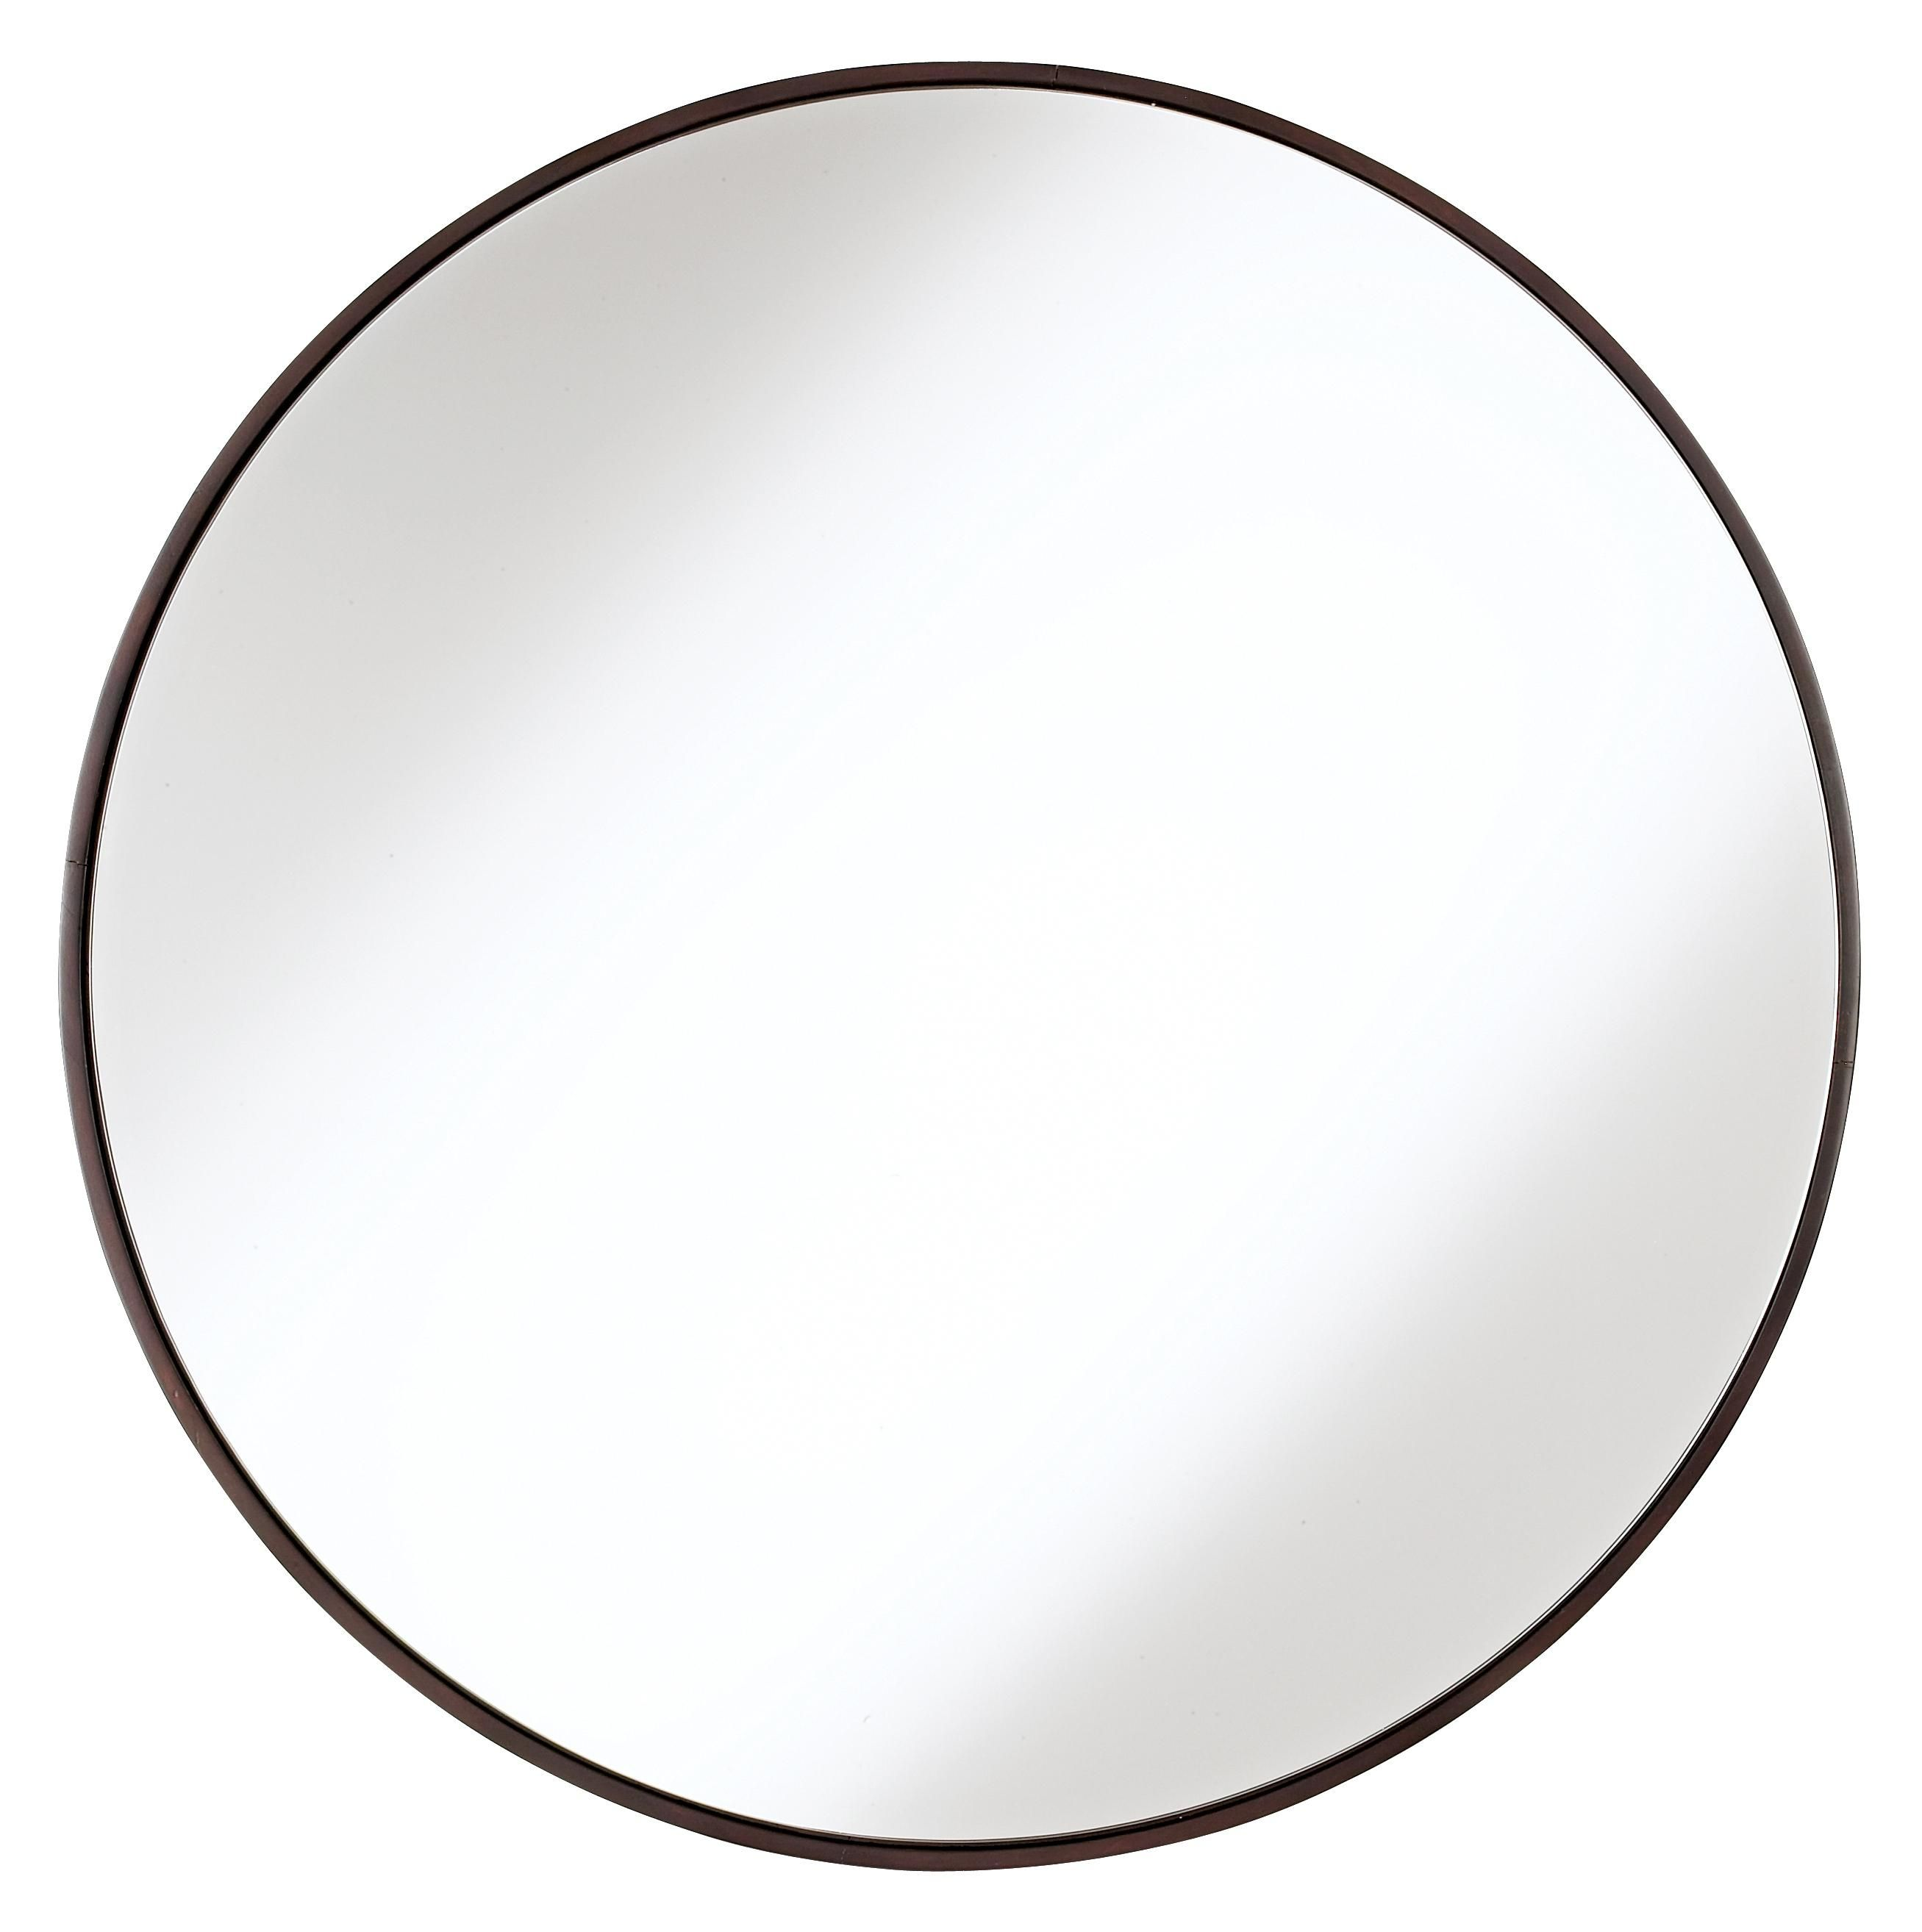 Round wood trimmed 34 wide wall mirror 34 wall mirrors and round wood trimmed 34 wide wall mirror amipublicfo Images